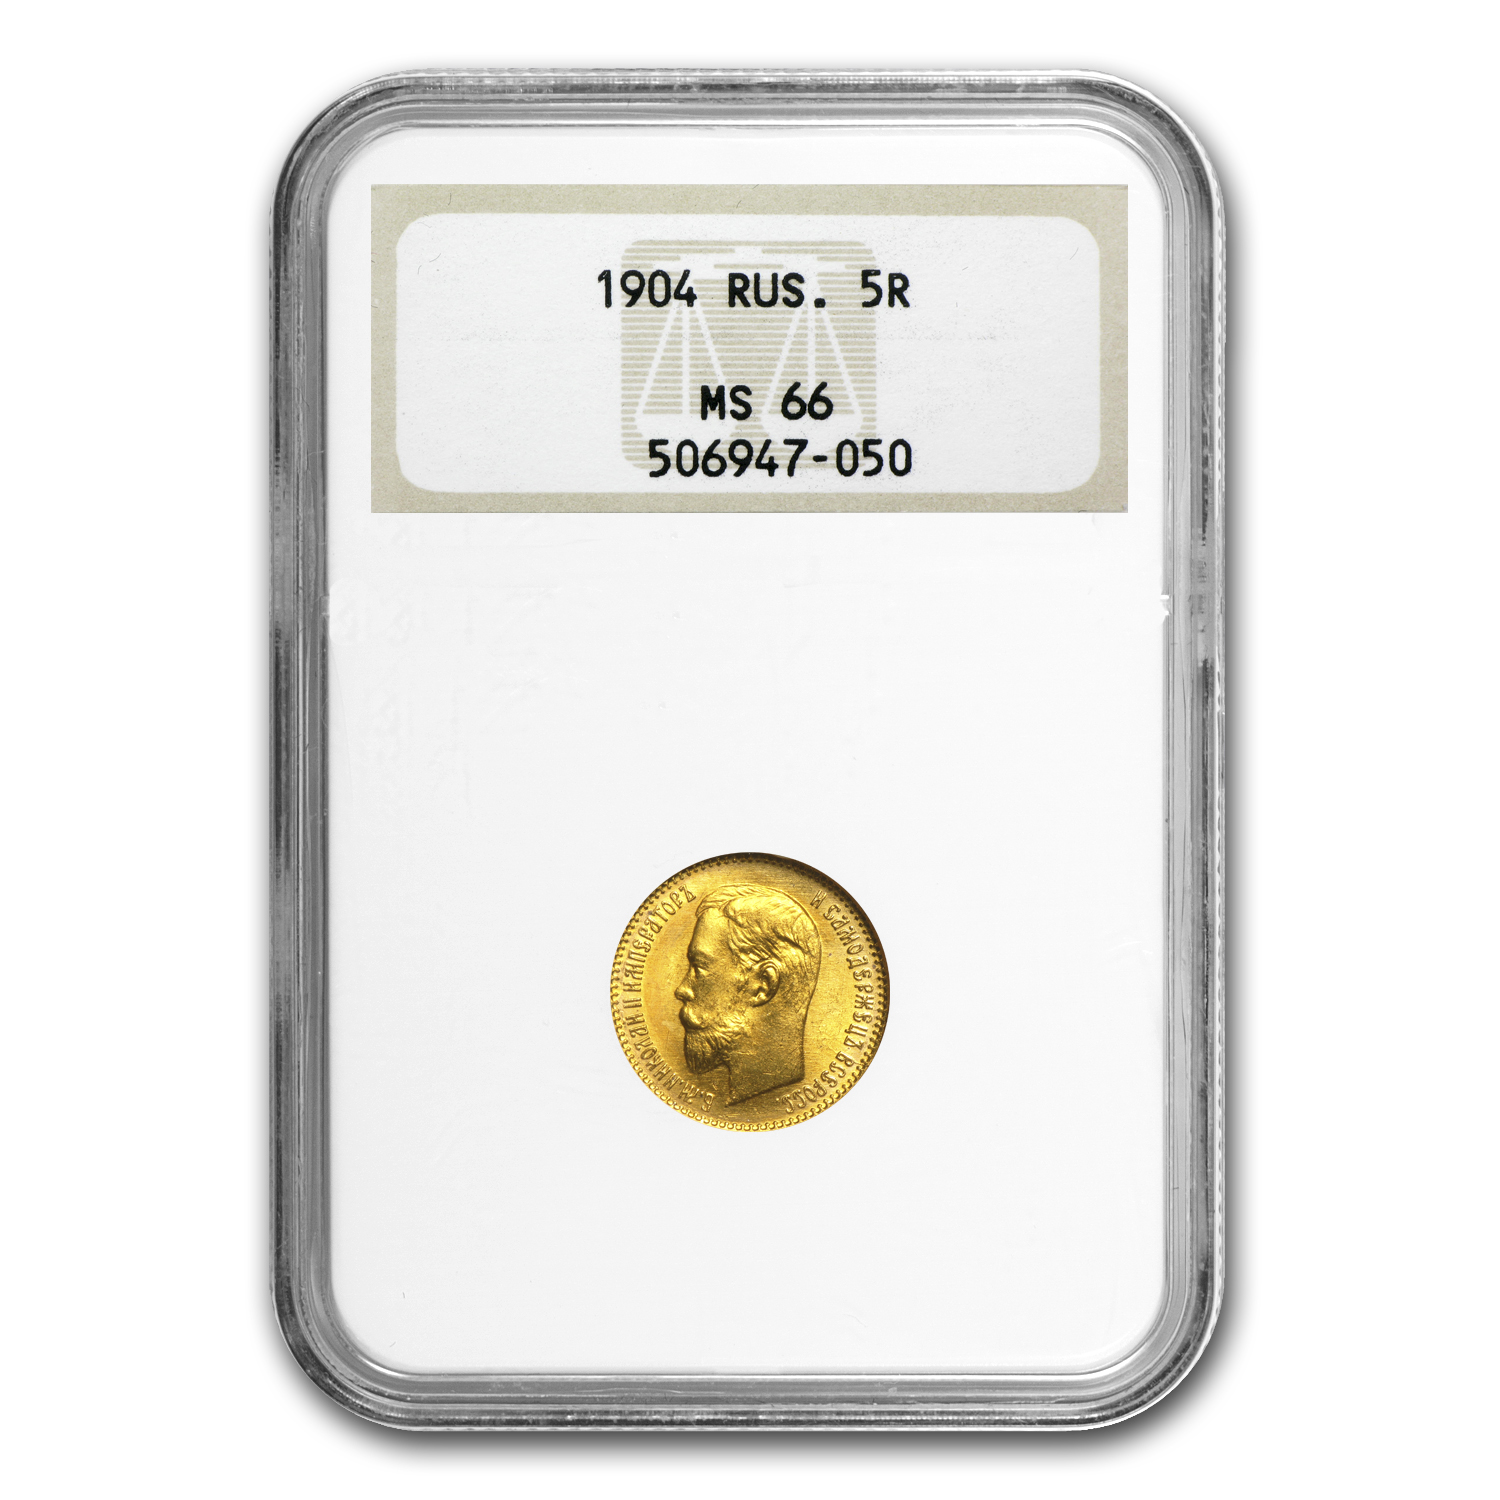 1904 Russia Gold 5 Roubles Nicholas II MS-66 NGC